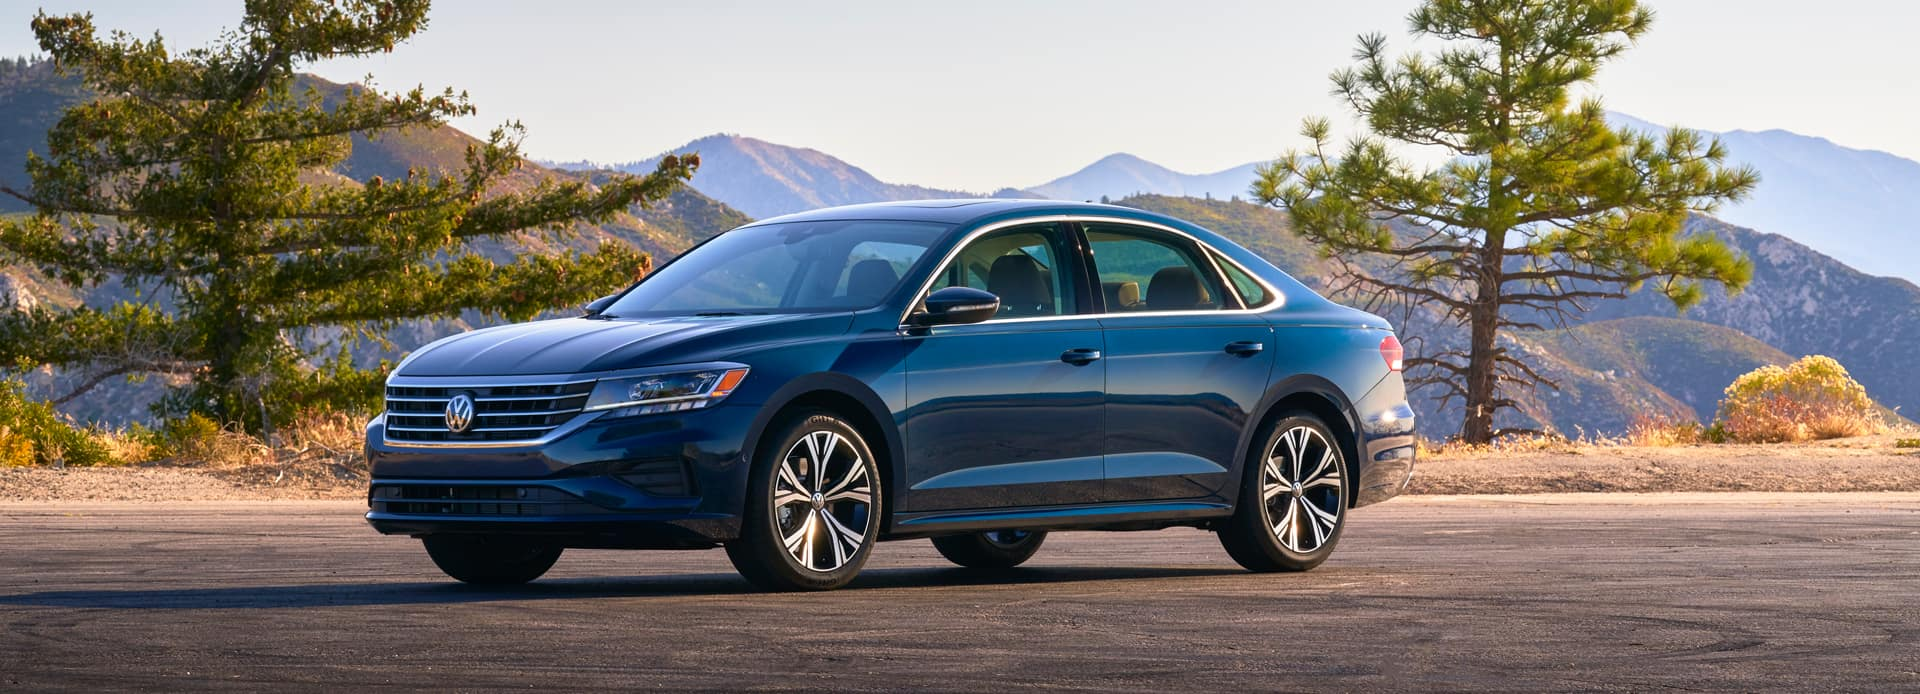 5 cooleste things about the 2020 VW Passat Timmons Volkswagen Long Beach